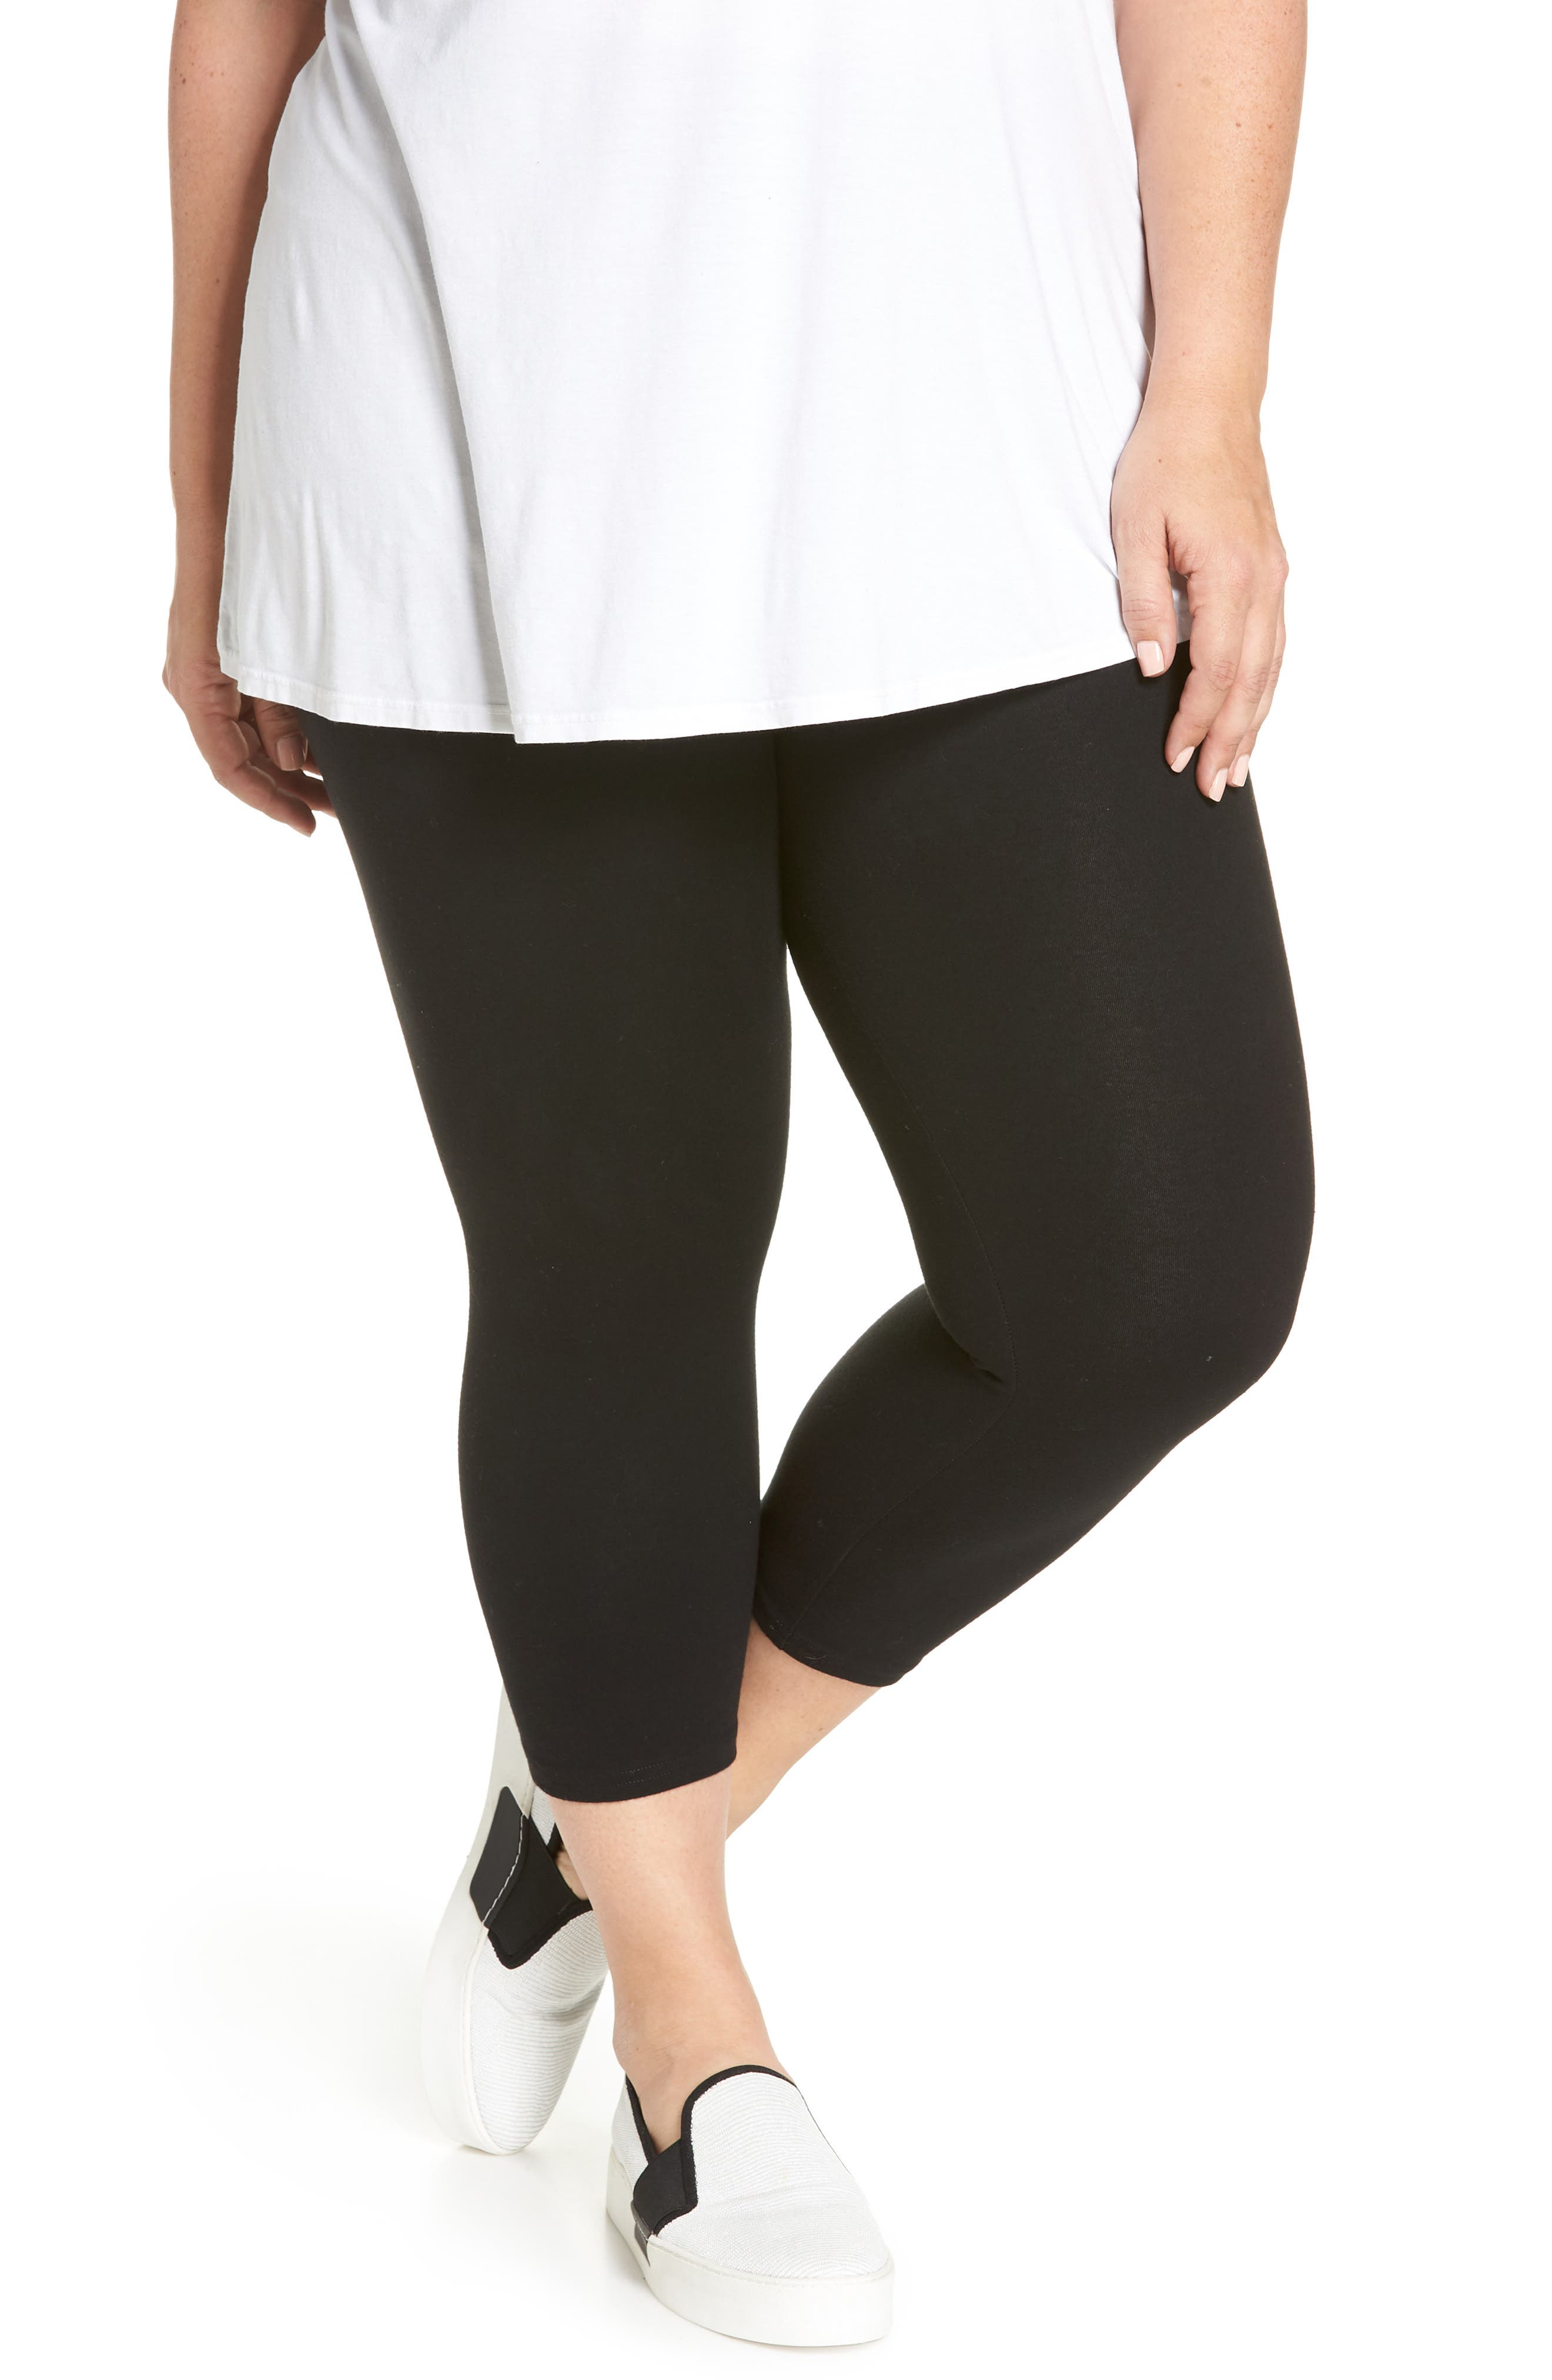 Nordstrom Go To High Waist Crop Leggings (Plus Size)